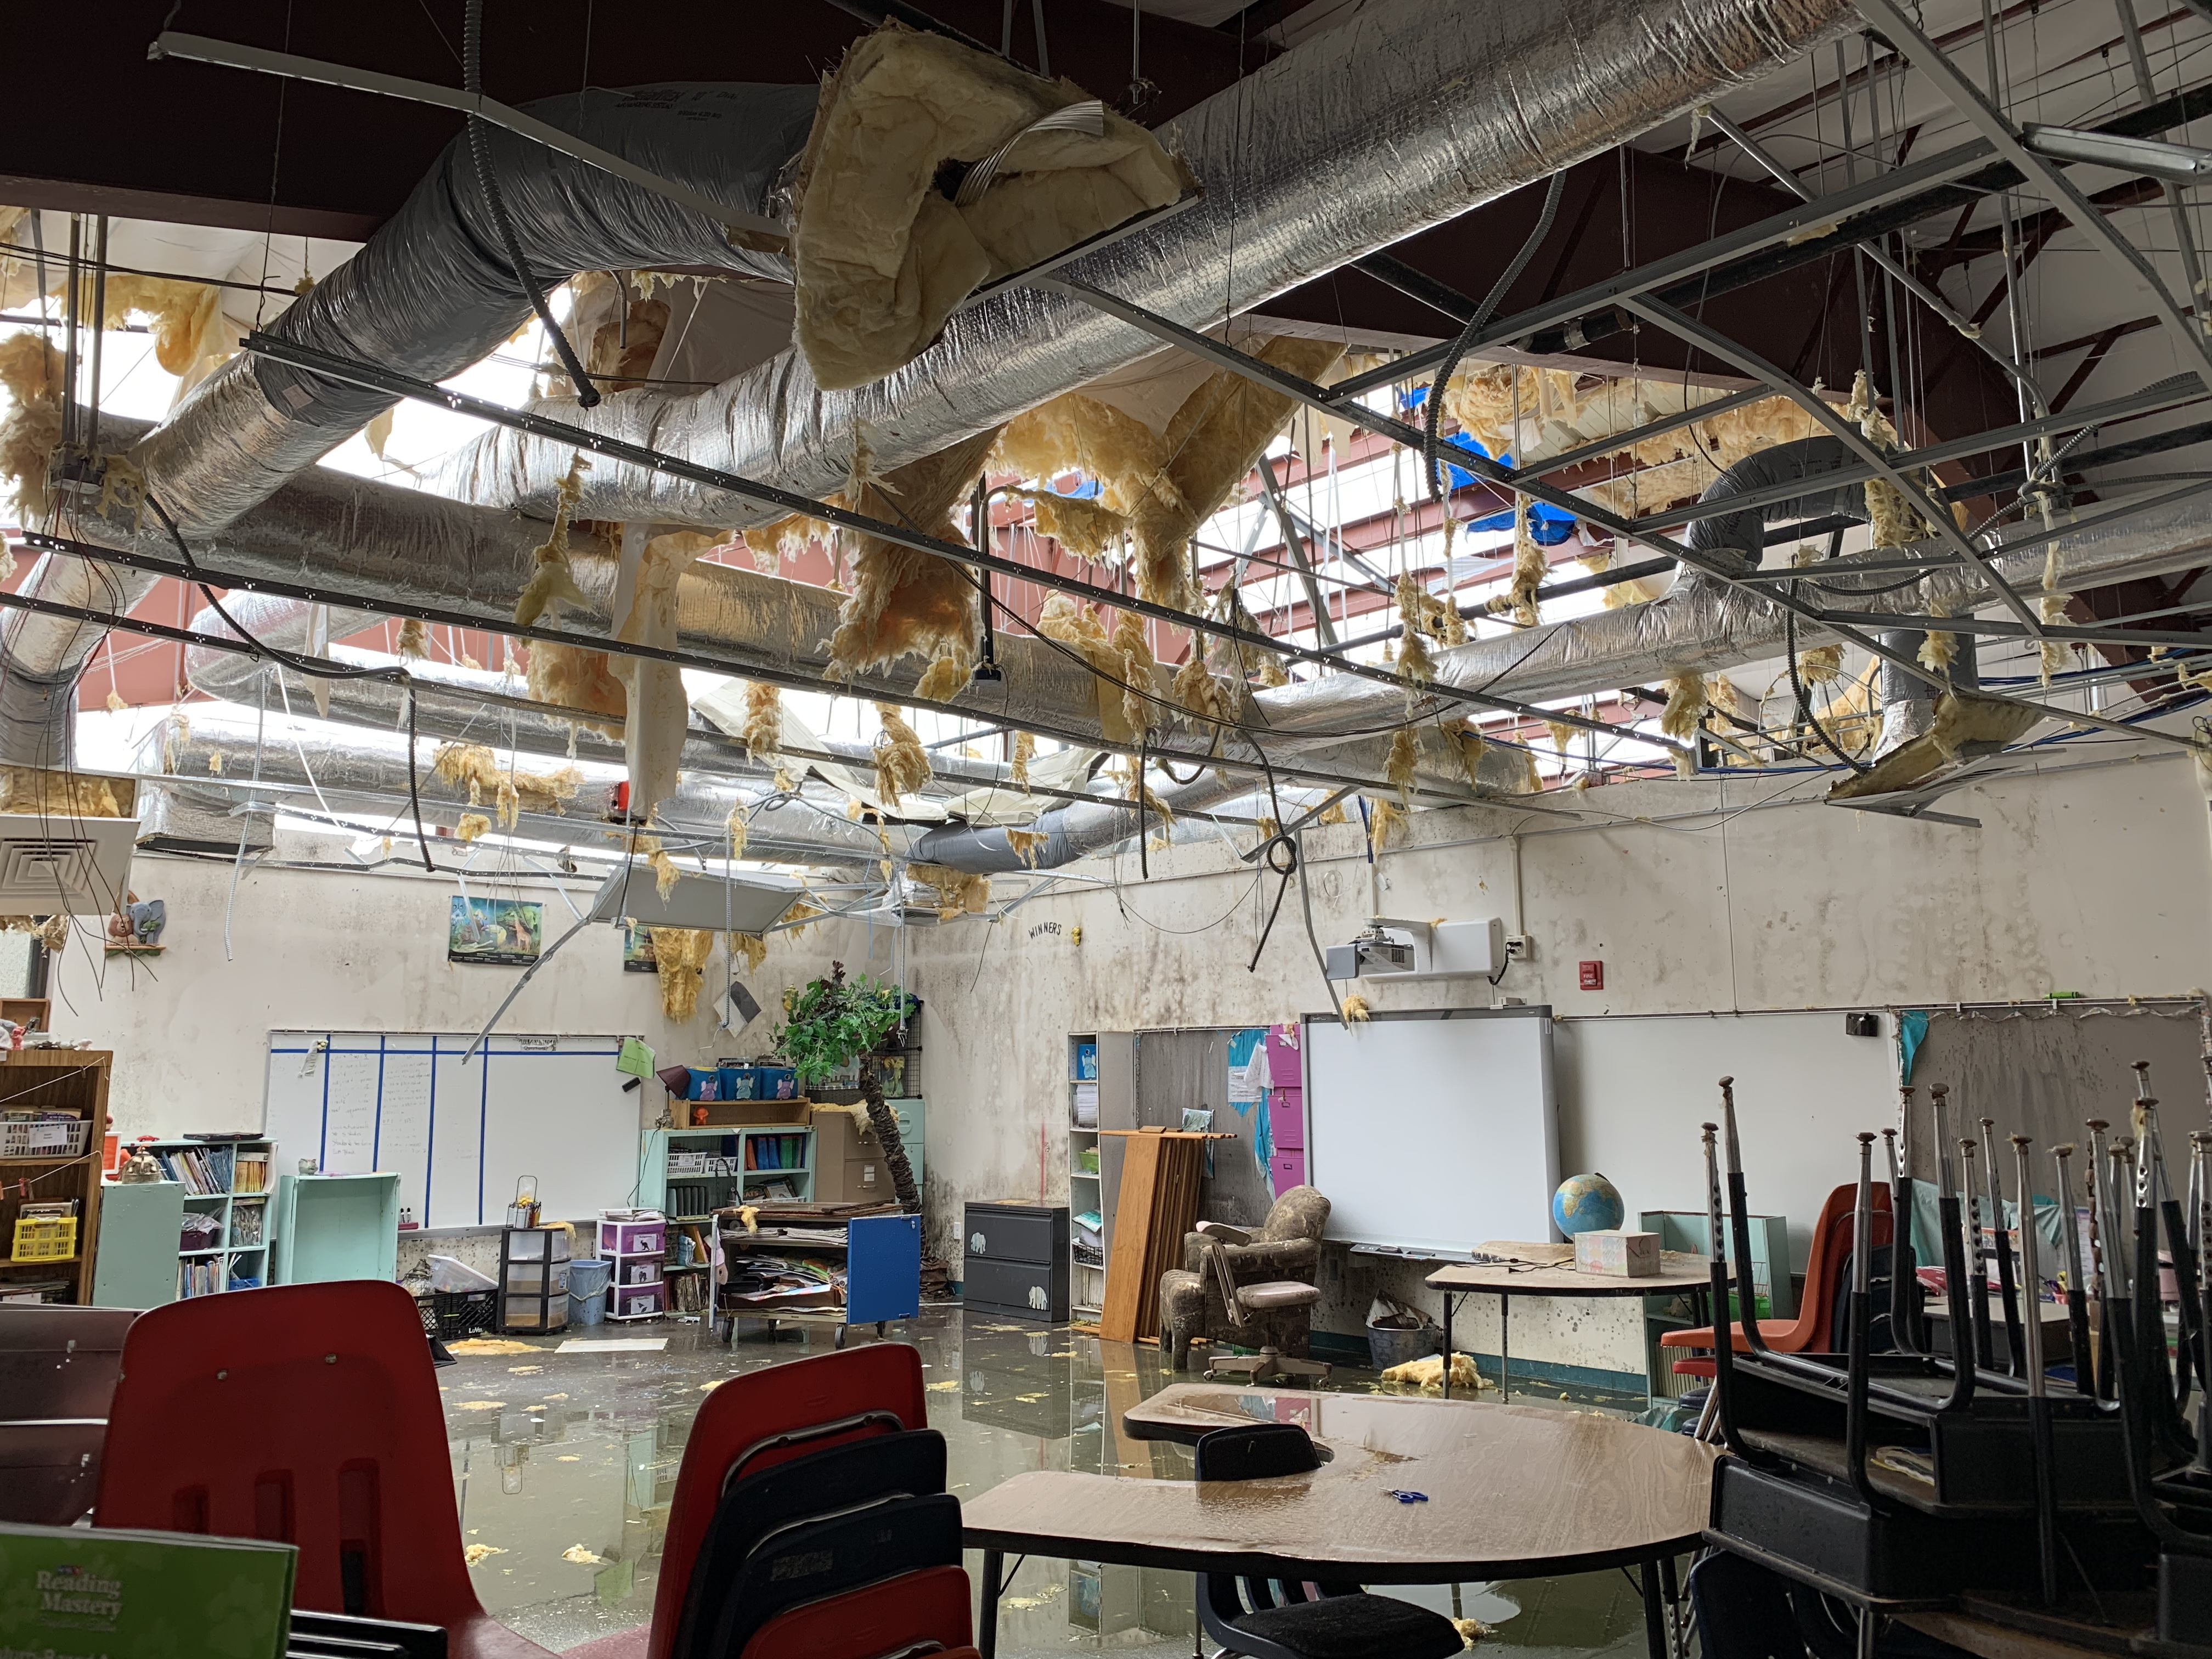 Principals who lost schools in Hurricane Michael assume new roles in devastated district